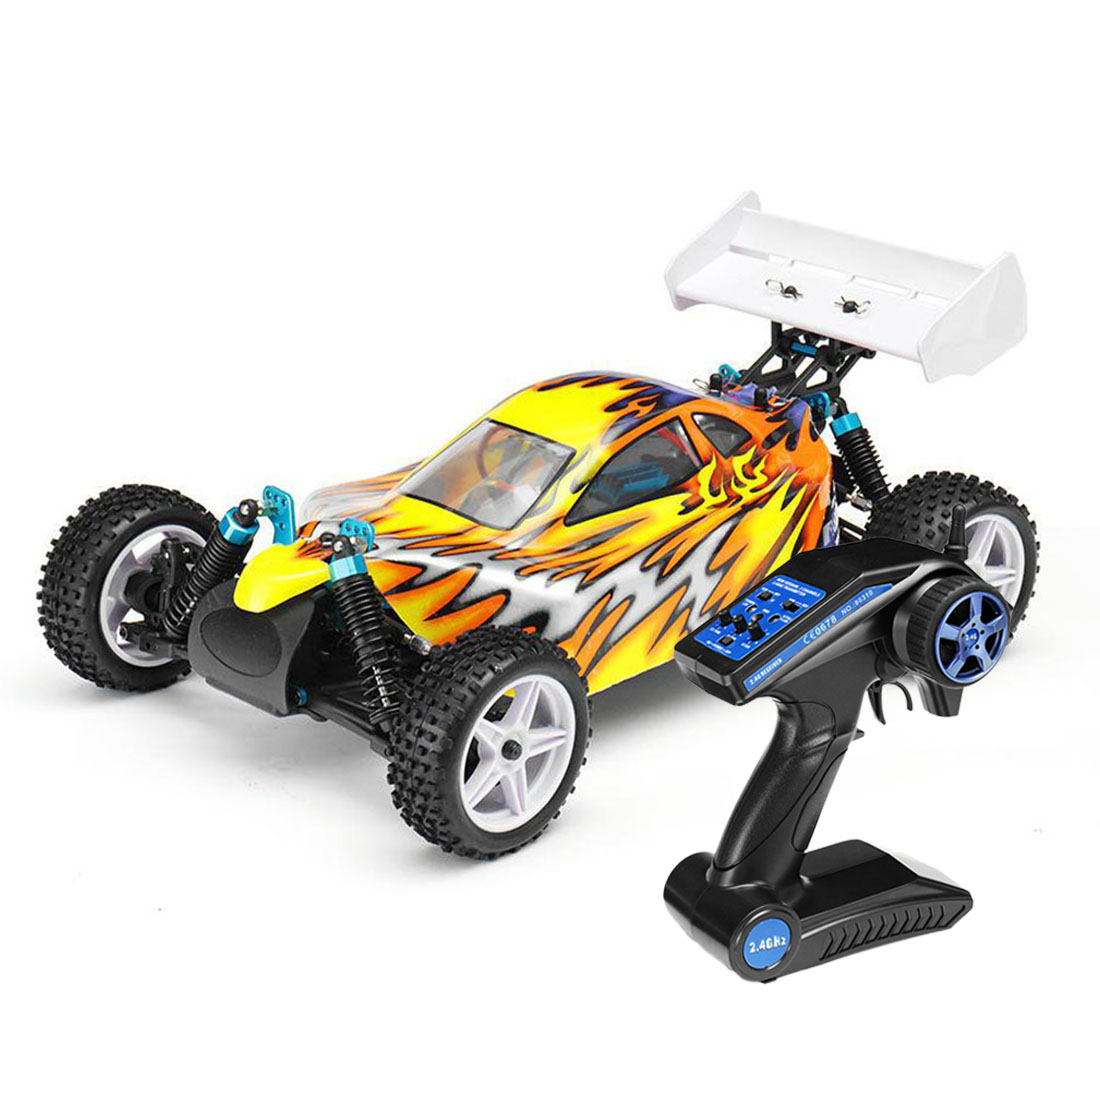 HSP 94107 1/10 4WD 40km/H Brushed Electric Off Road Buggy RC Car For Children Education Birthday Gift - Yellow US Plug/EU Plug